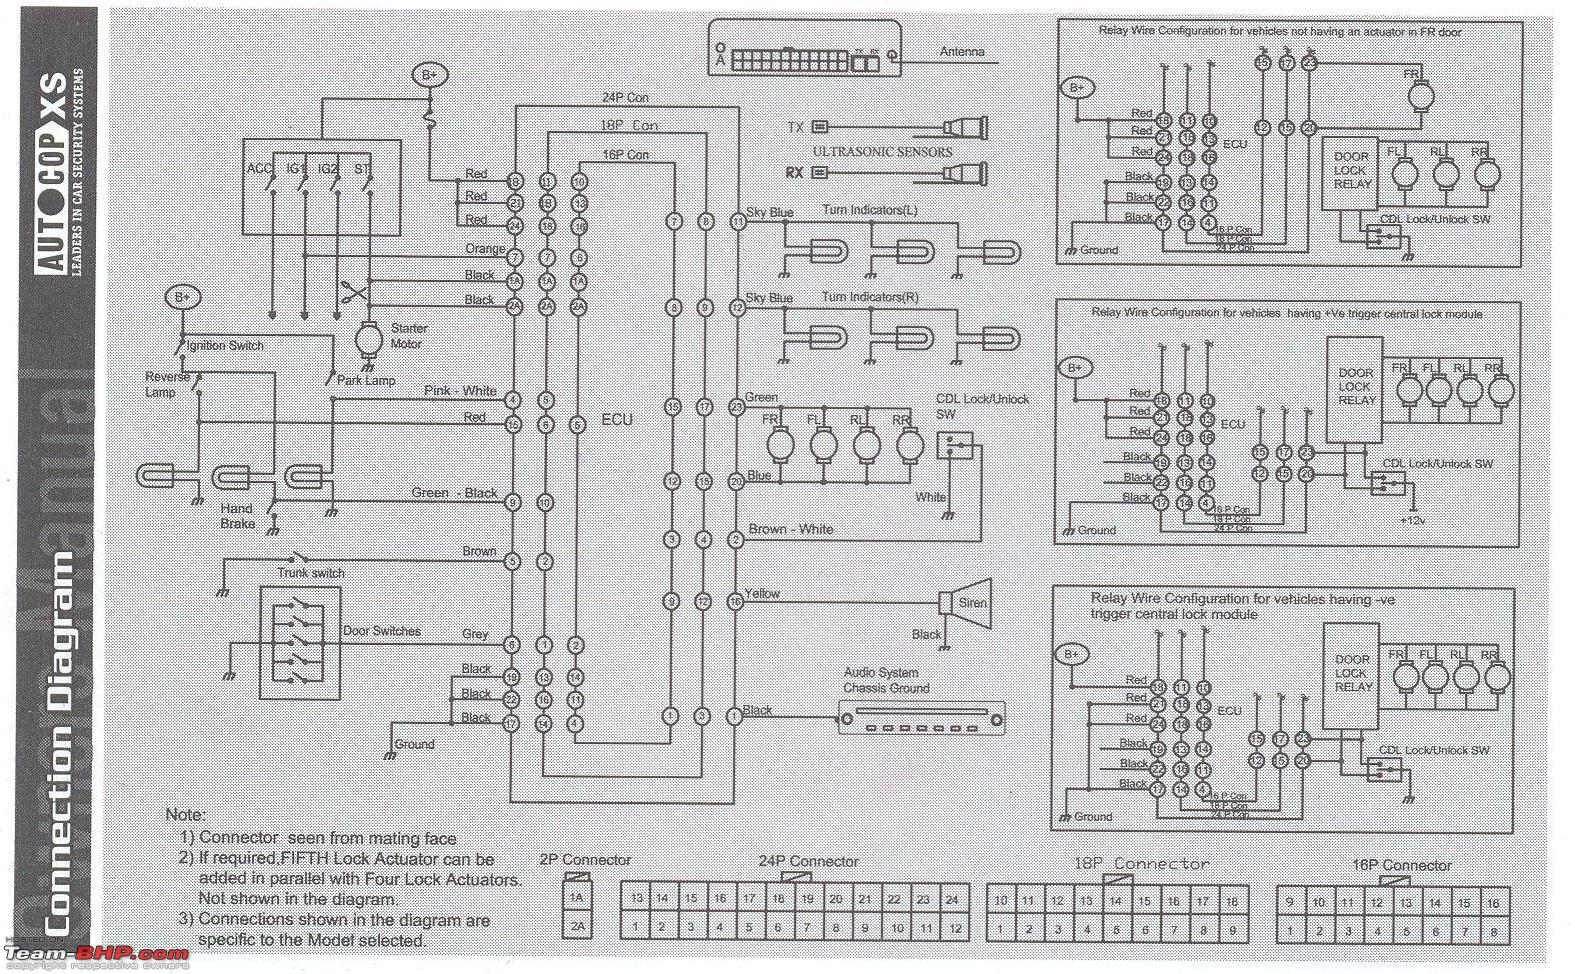 880602d1328028546 autocop xs manual wiring diagram image 5 autocop xs manual wiring diagram team bhp santro electrical wiring diagram at gsmx.co